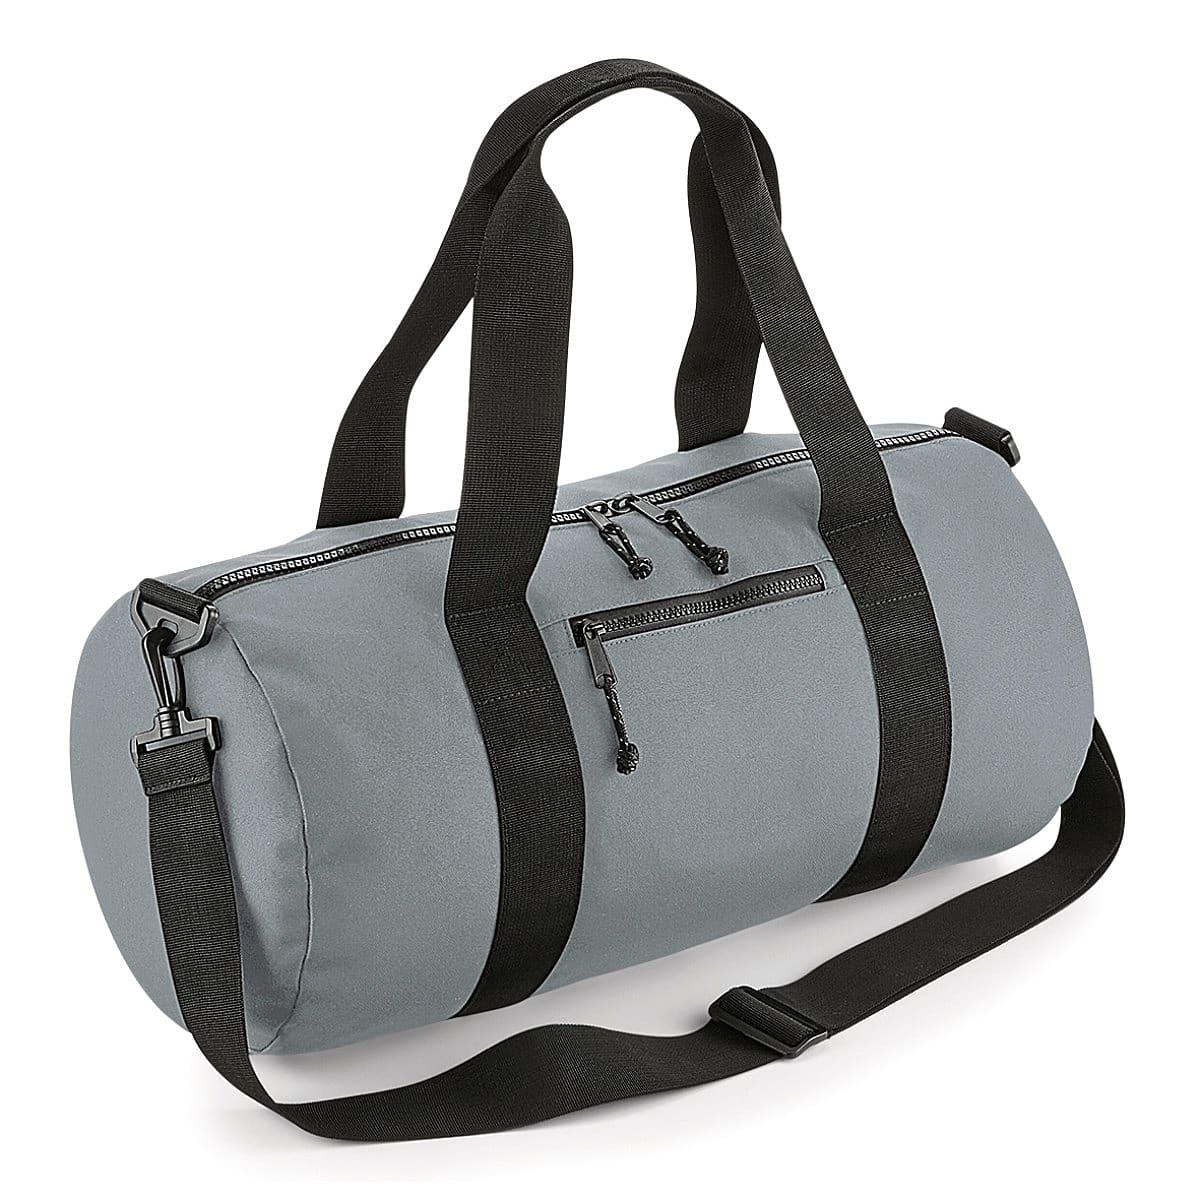 Bagbase Recycled Barrel Bag in Pure Grey (Product Code: BG284)